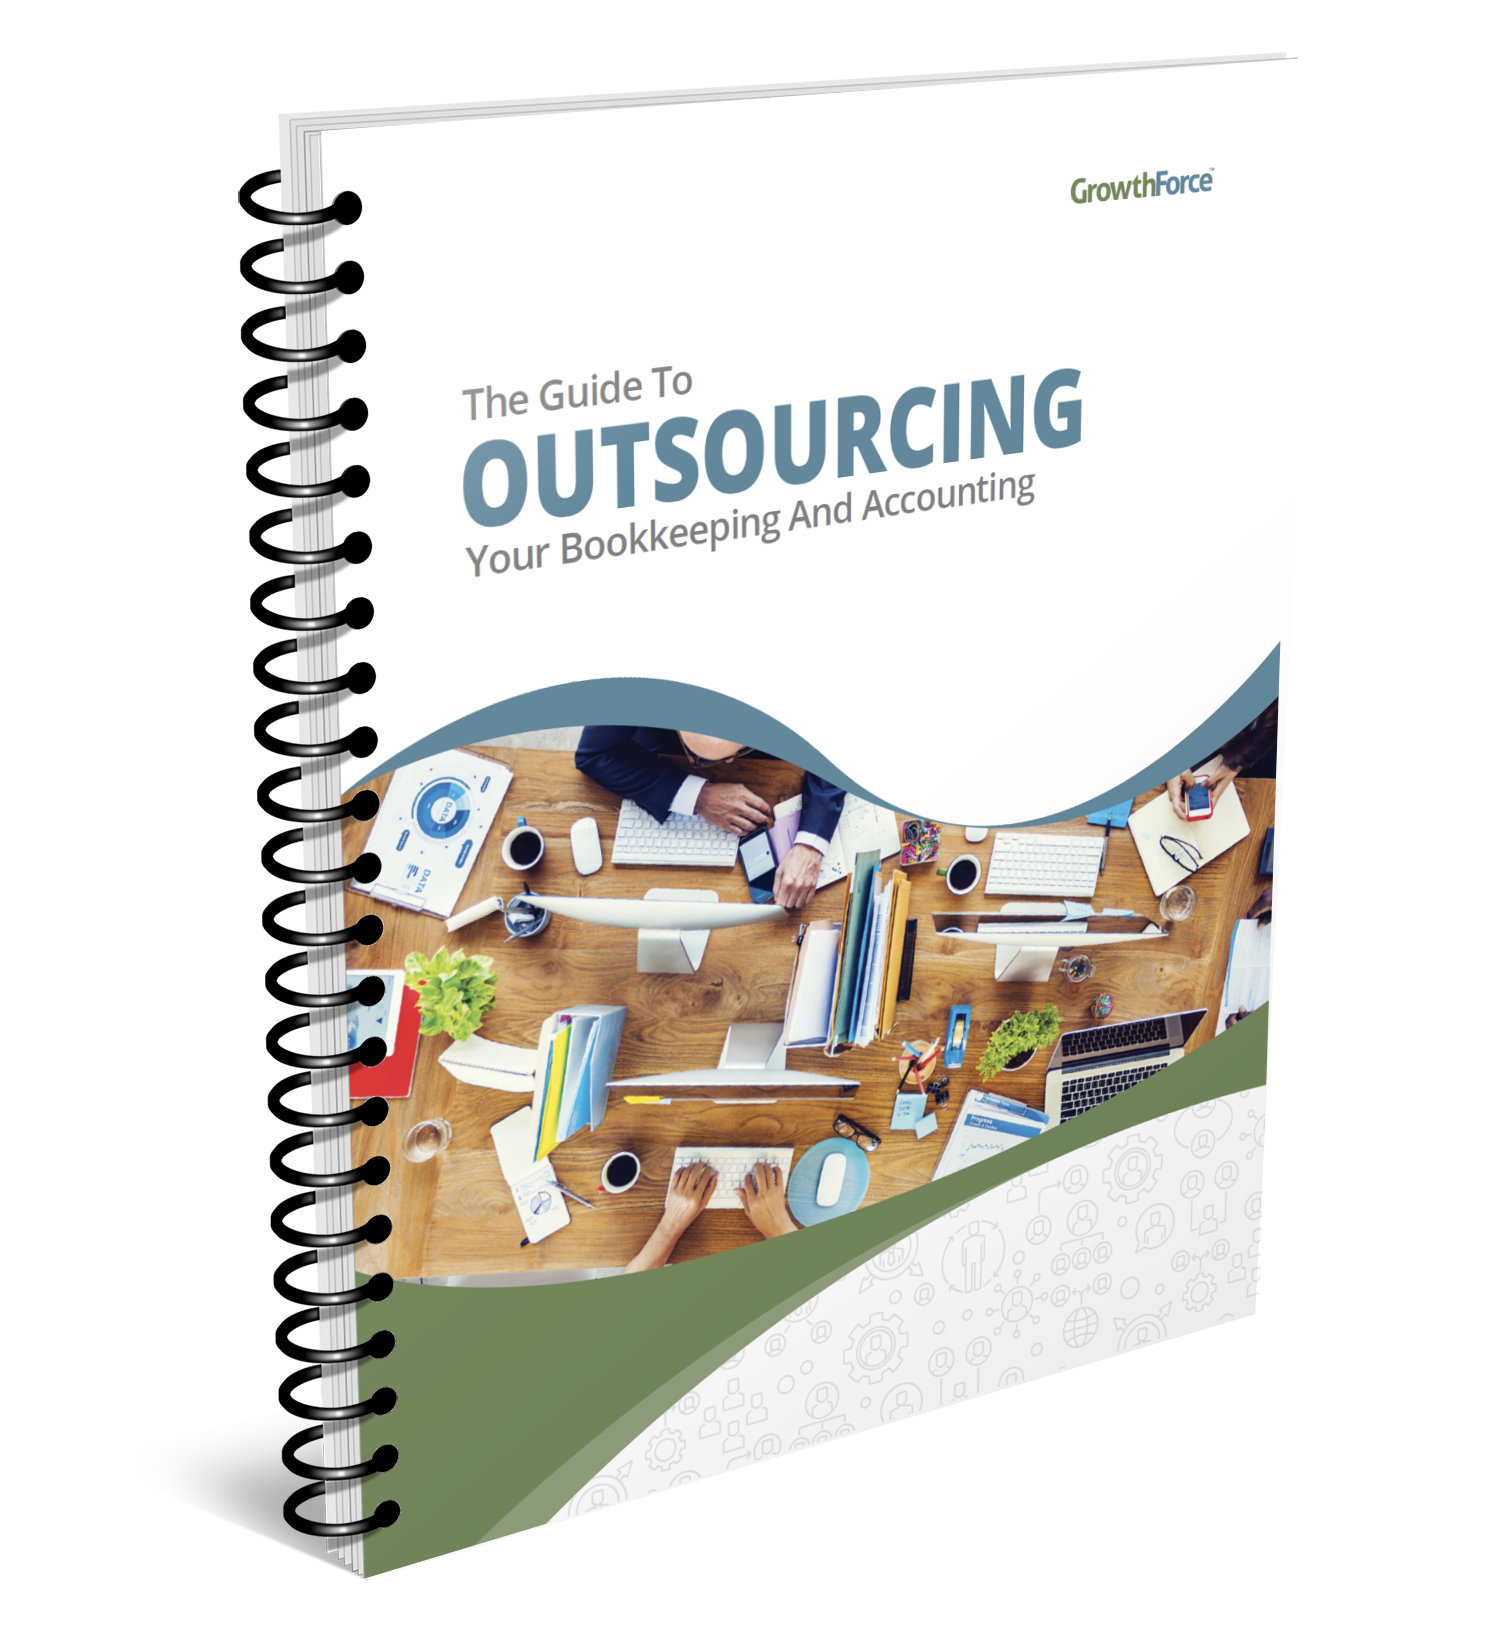 The Guide to Outsourcing